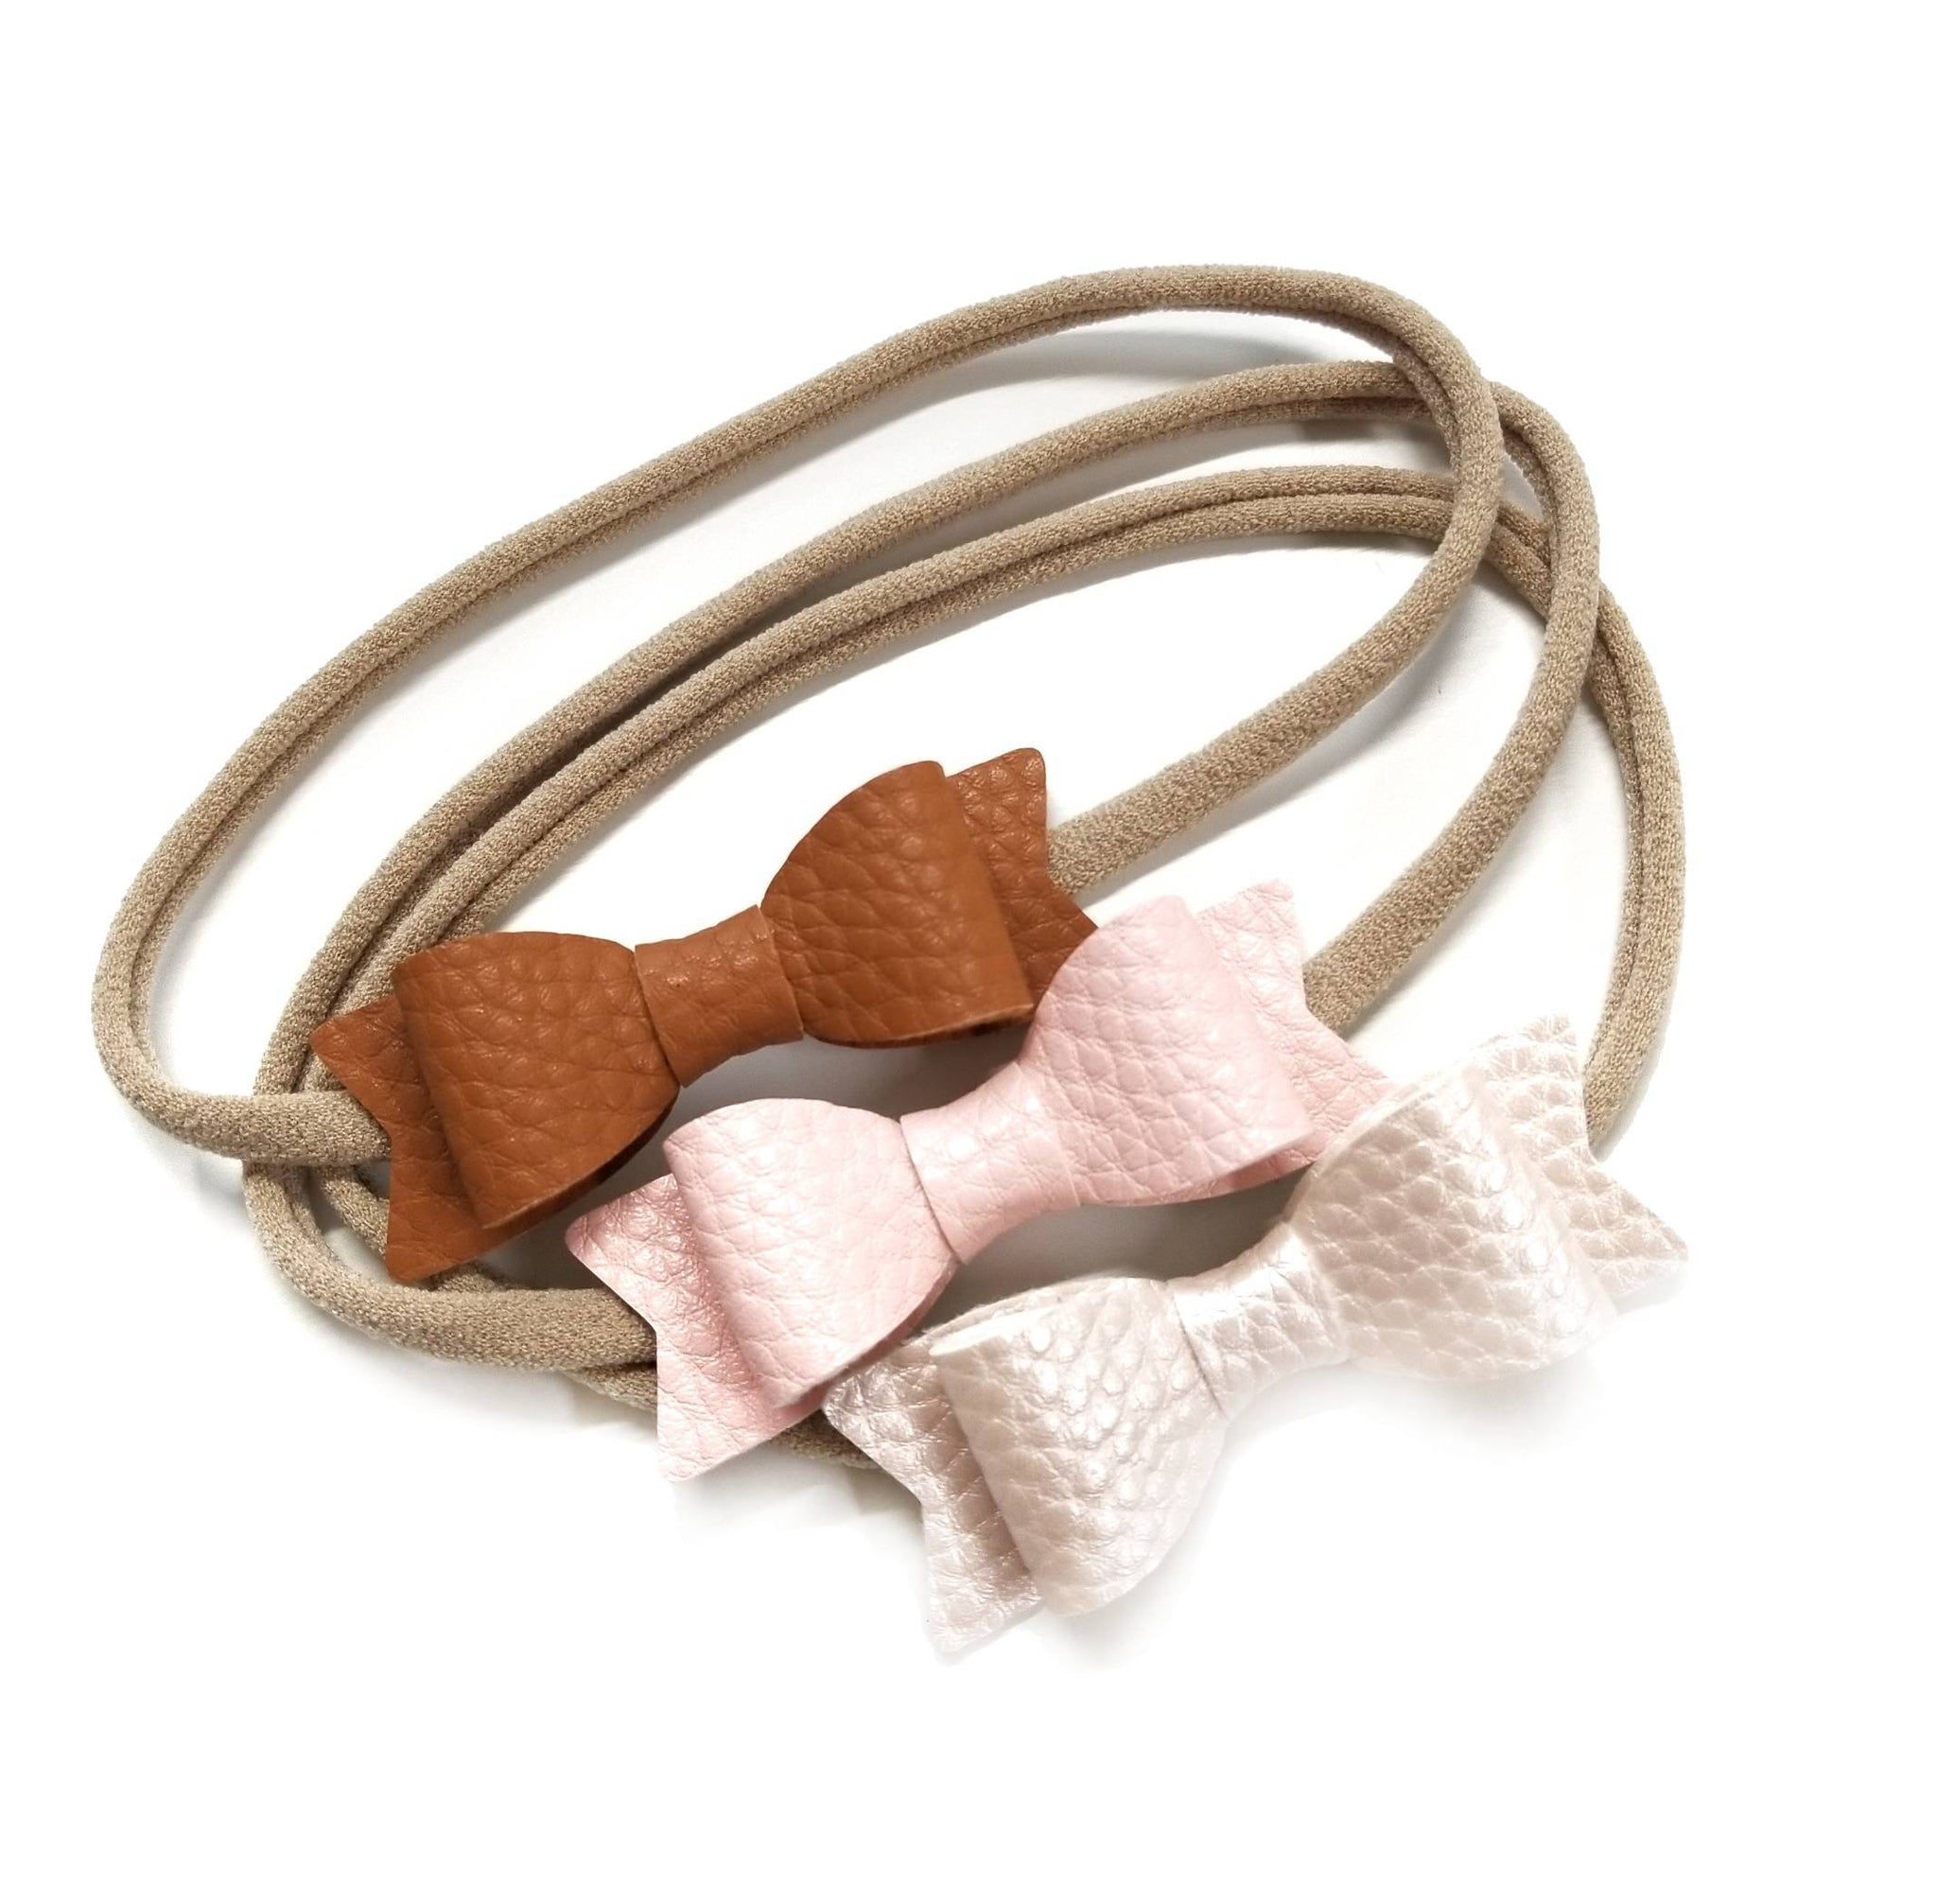 Baby bows, shades of blush, metallic shades, Leather headbands, baby headbands, vanaguelite, hair accessories, baby headbands.